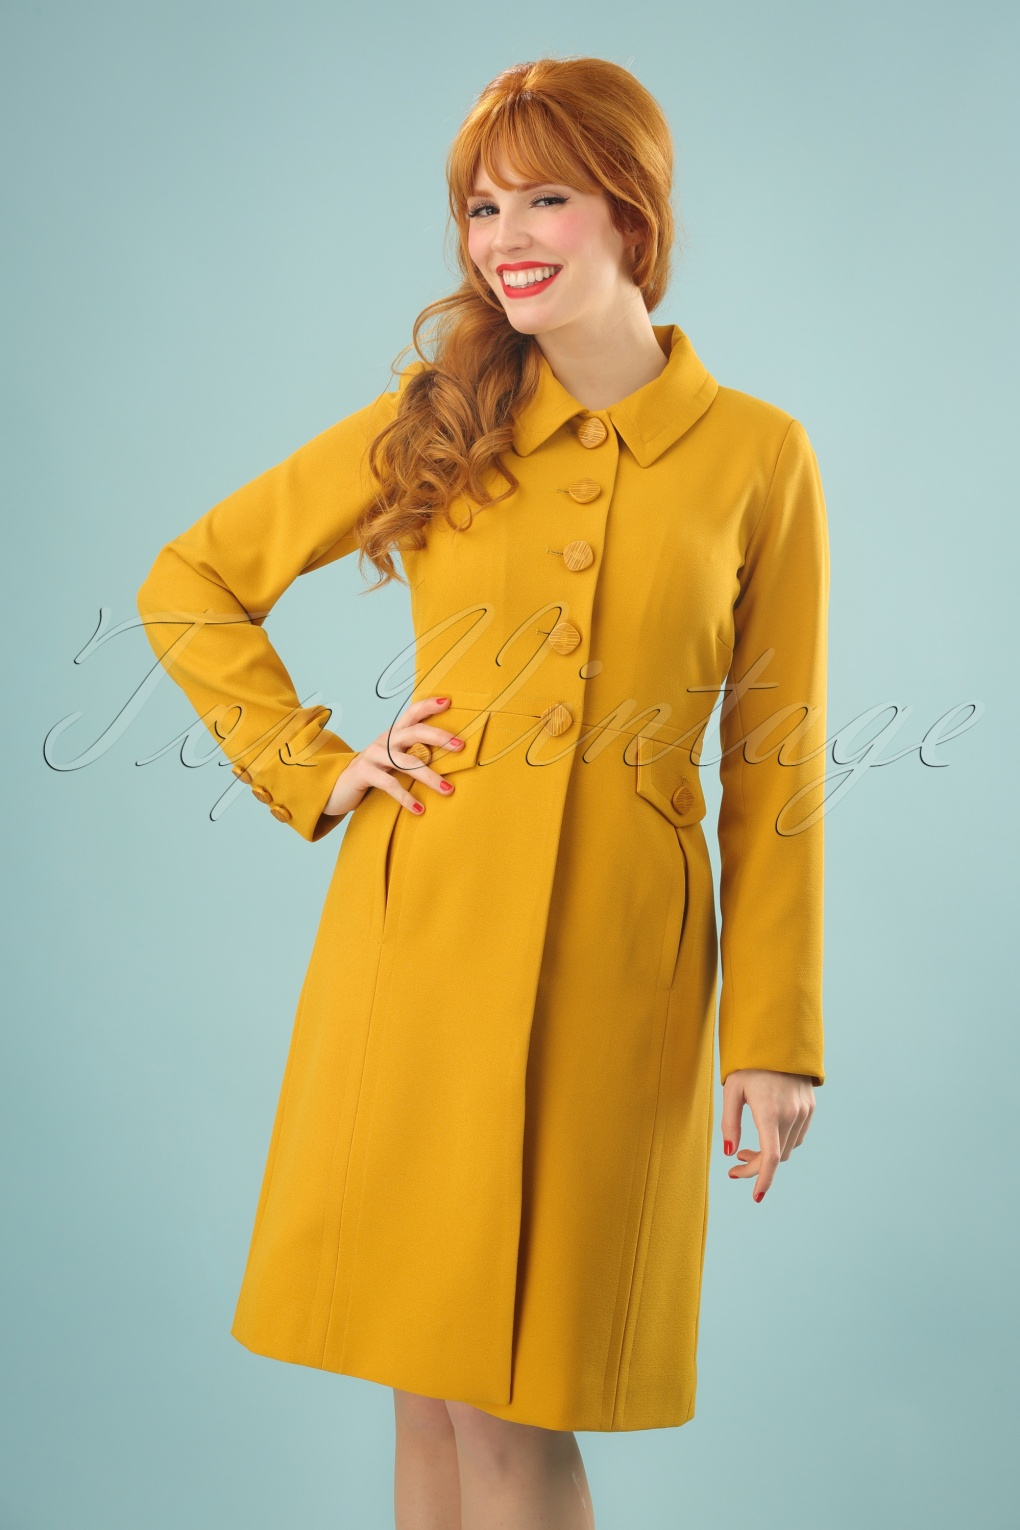 Vintage Style Coats, Jackets, Faux Fur, Tweed 60s Luisa Coat in Honey Yellow £142.04 AT vintagedancer.com